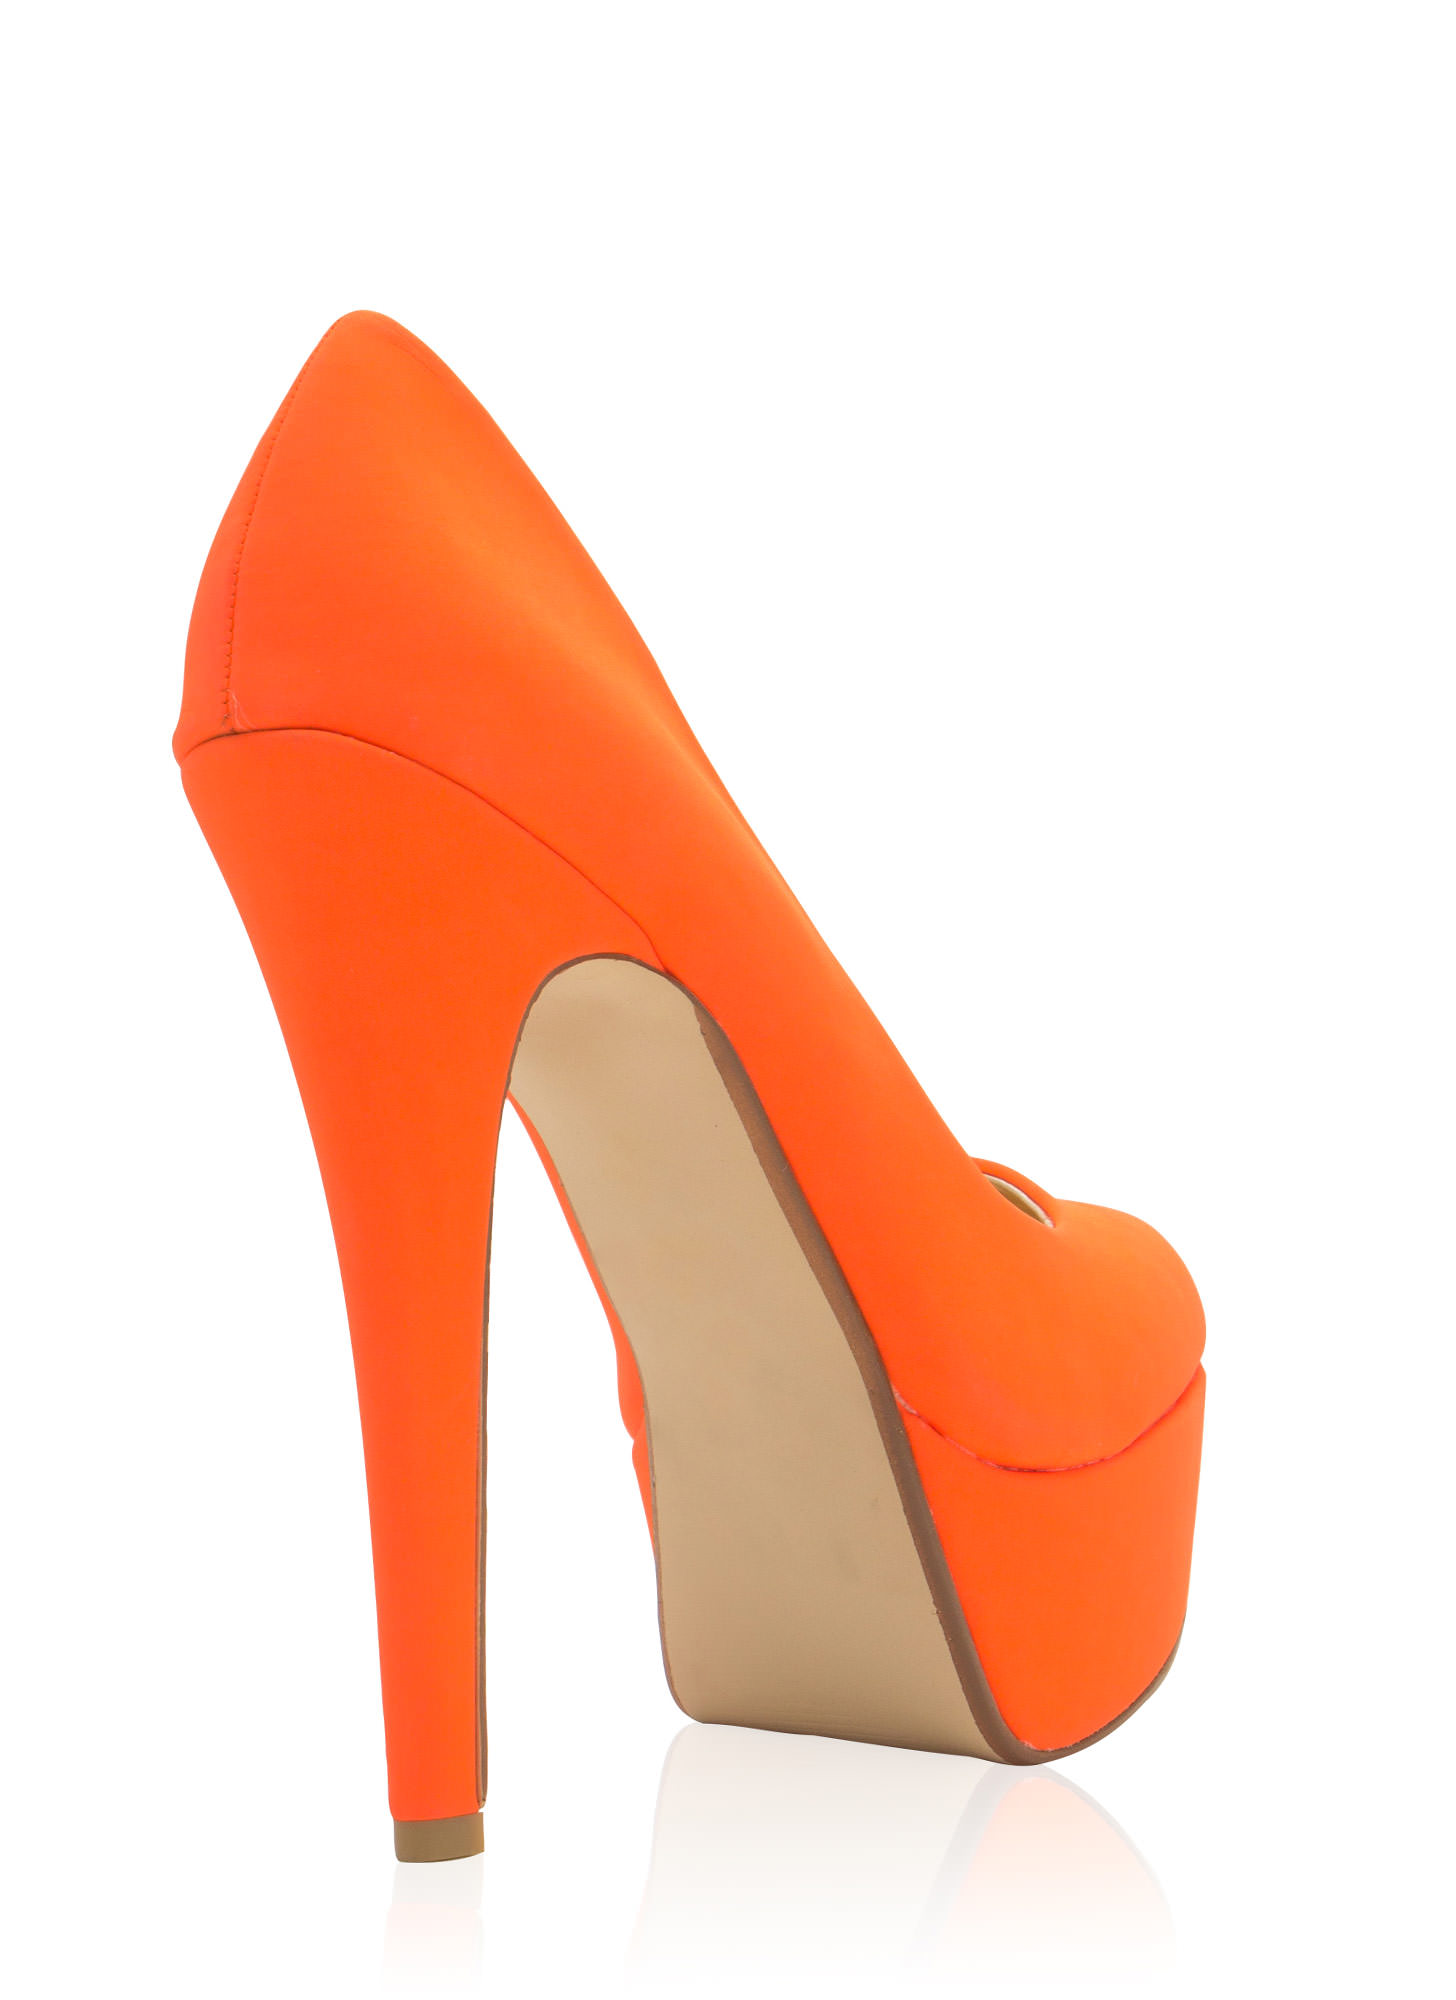 Simply Irresistible Platforms NEONORANGE